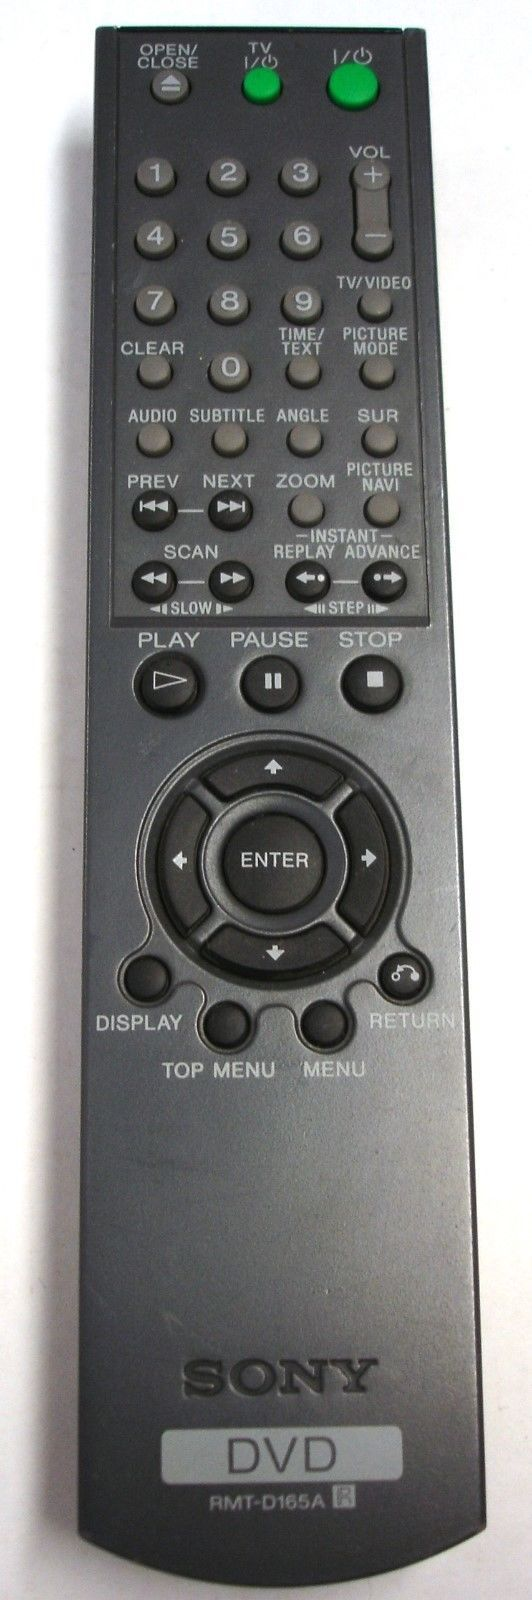 Genuine SONY RMT-D165A DVD Remote Control For DVP-NS501 NS501P NS501PS Tested